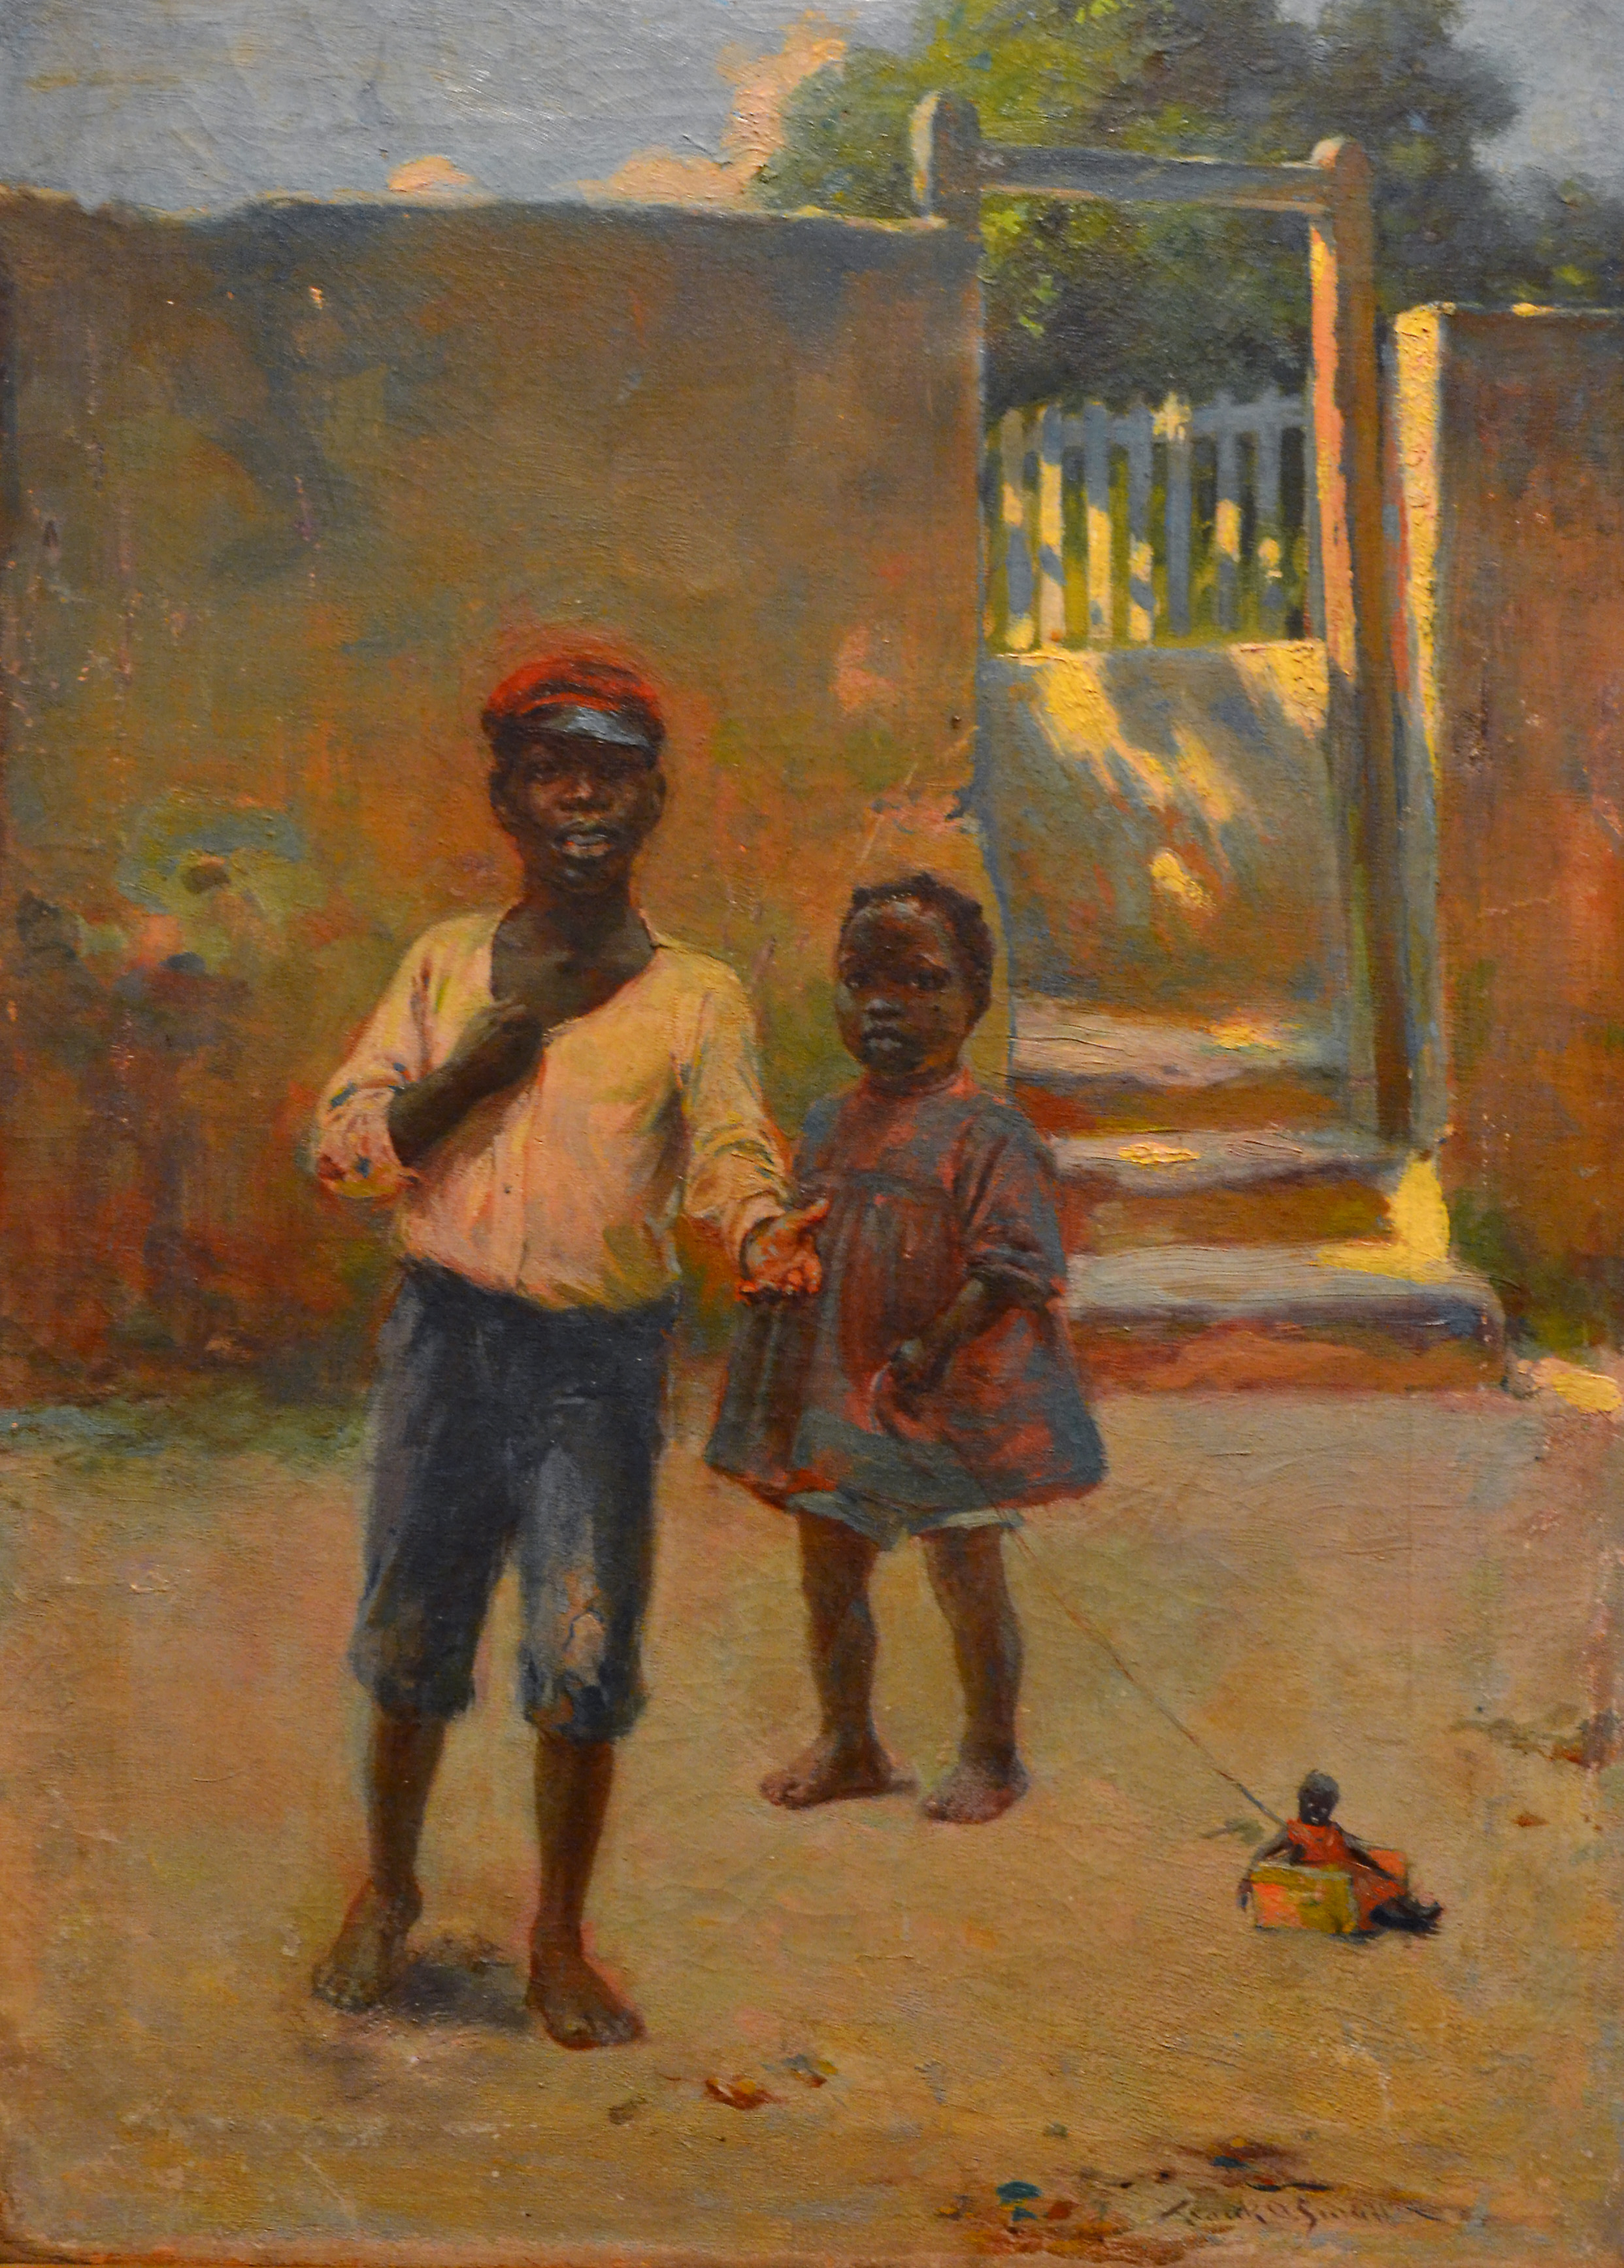 """""""Young Children"""" (nd), Frank Otis Small, oil on canvas, 21 ½ x 15 ¼ . In the collection of Peter and Pippa Vlasov and currently on display at the NAGB in """"Traversing the Picturesque""""."""